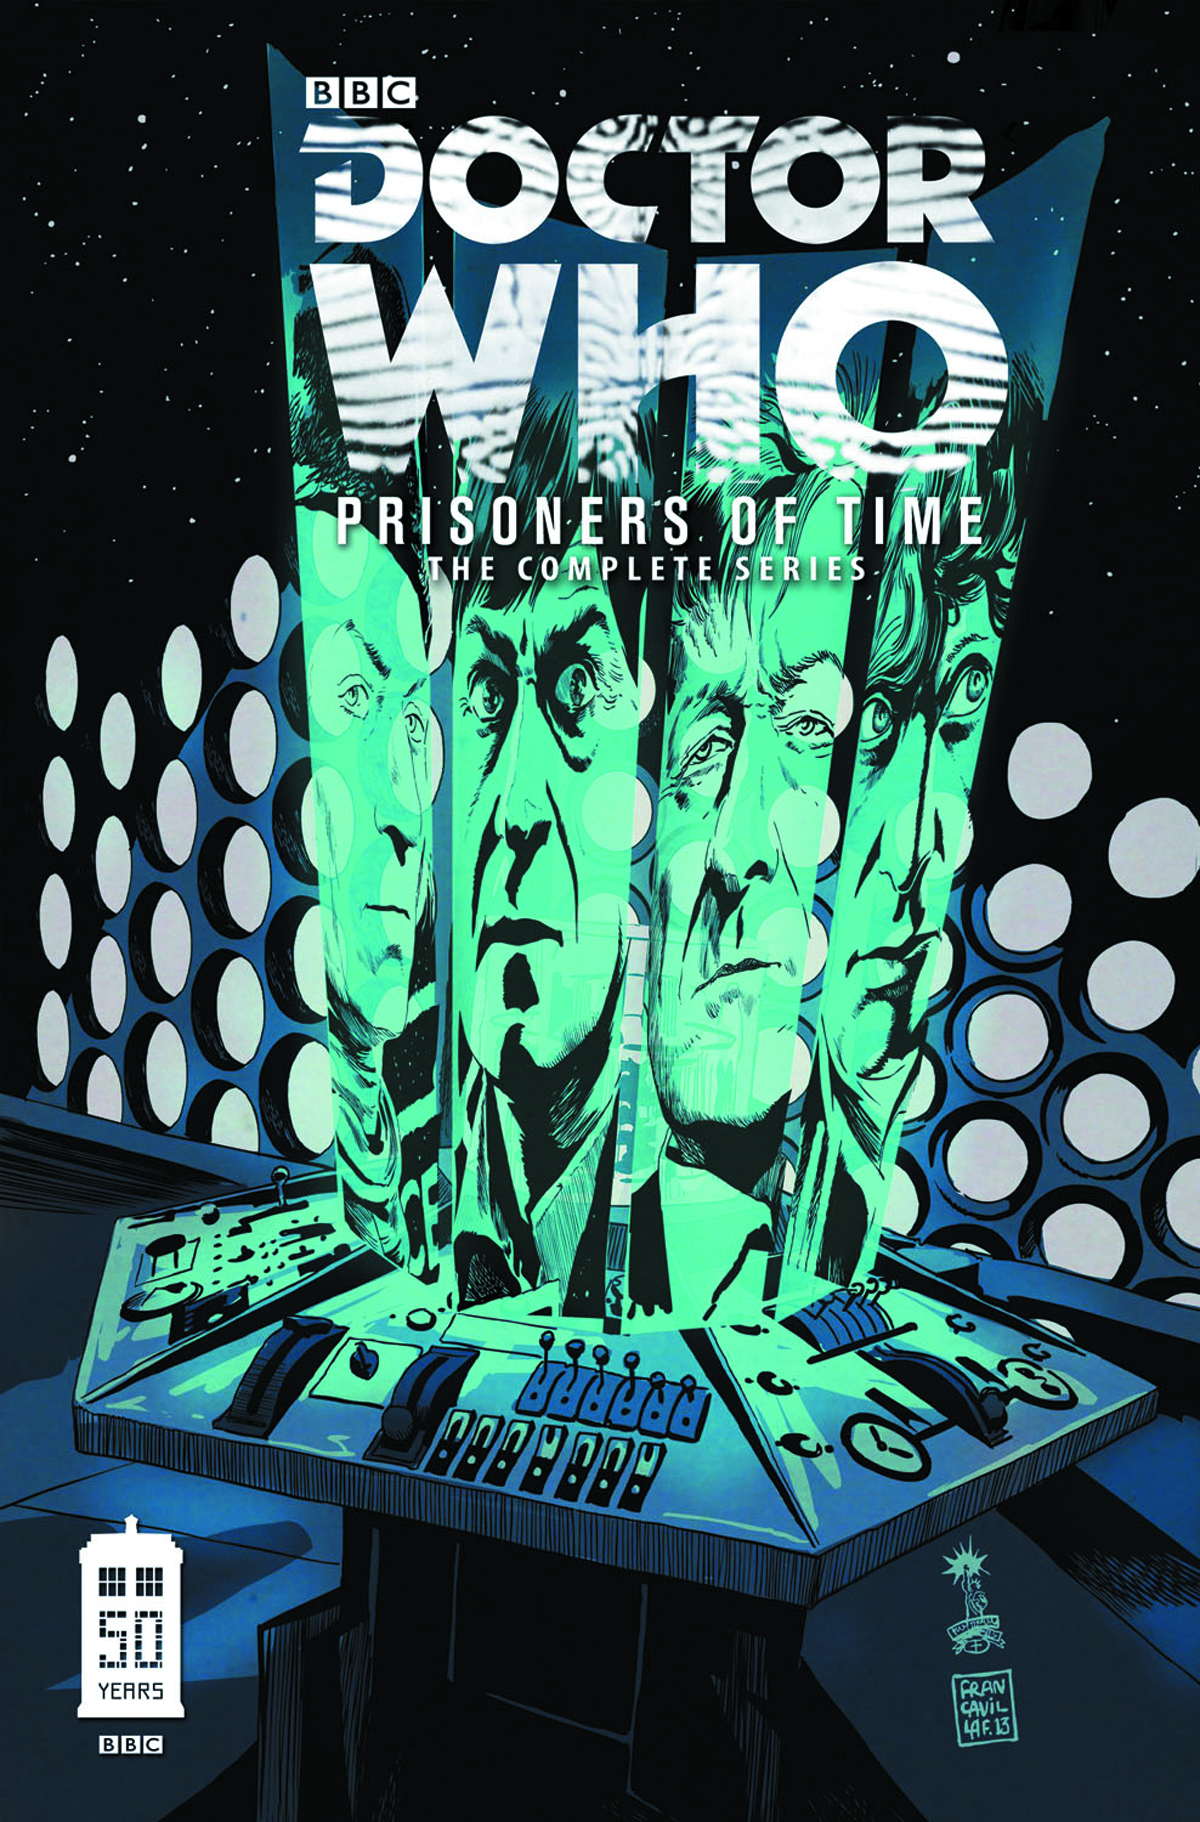 DOCTOR WHO PRISONERS OF TIME DLX HC